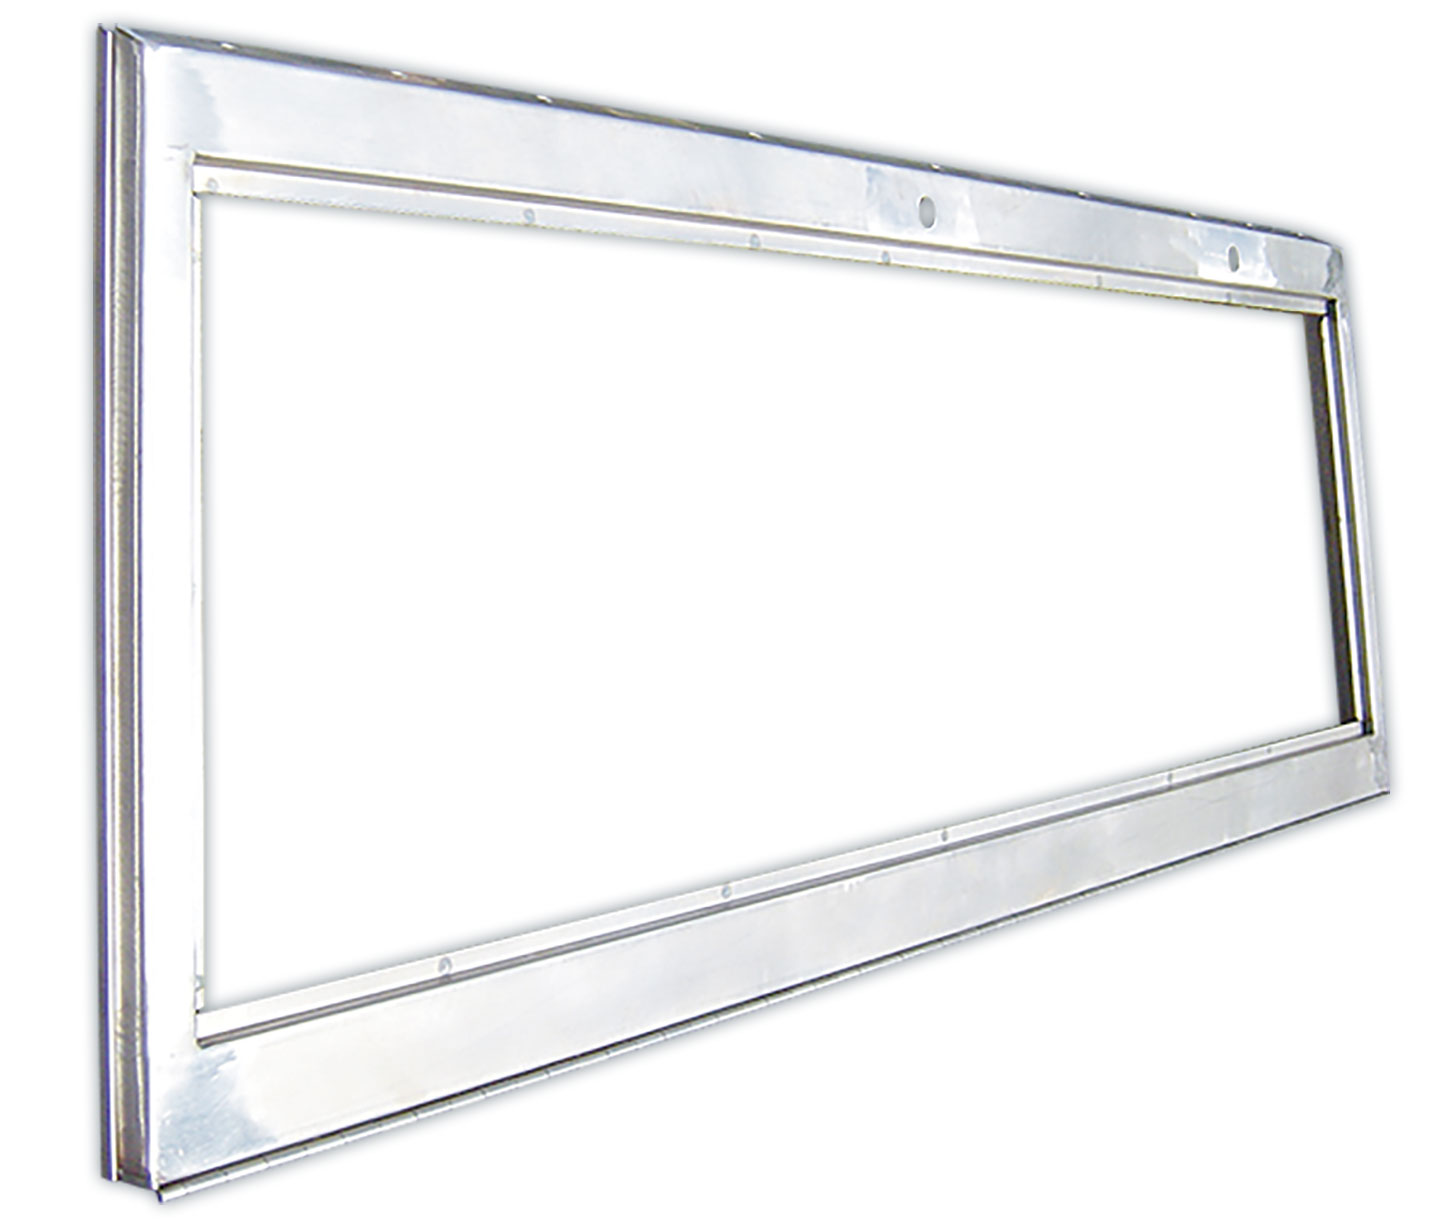 Windshield Frame - Stainless Steel w/Stainless Hinge, 66-77 Ford Bronco